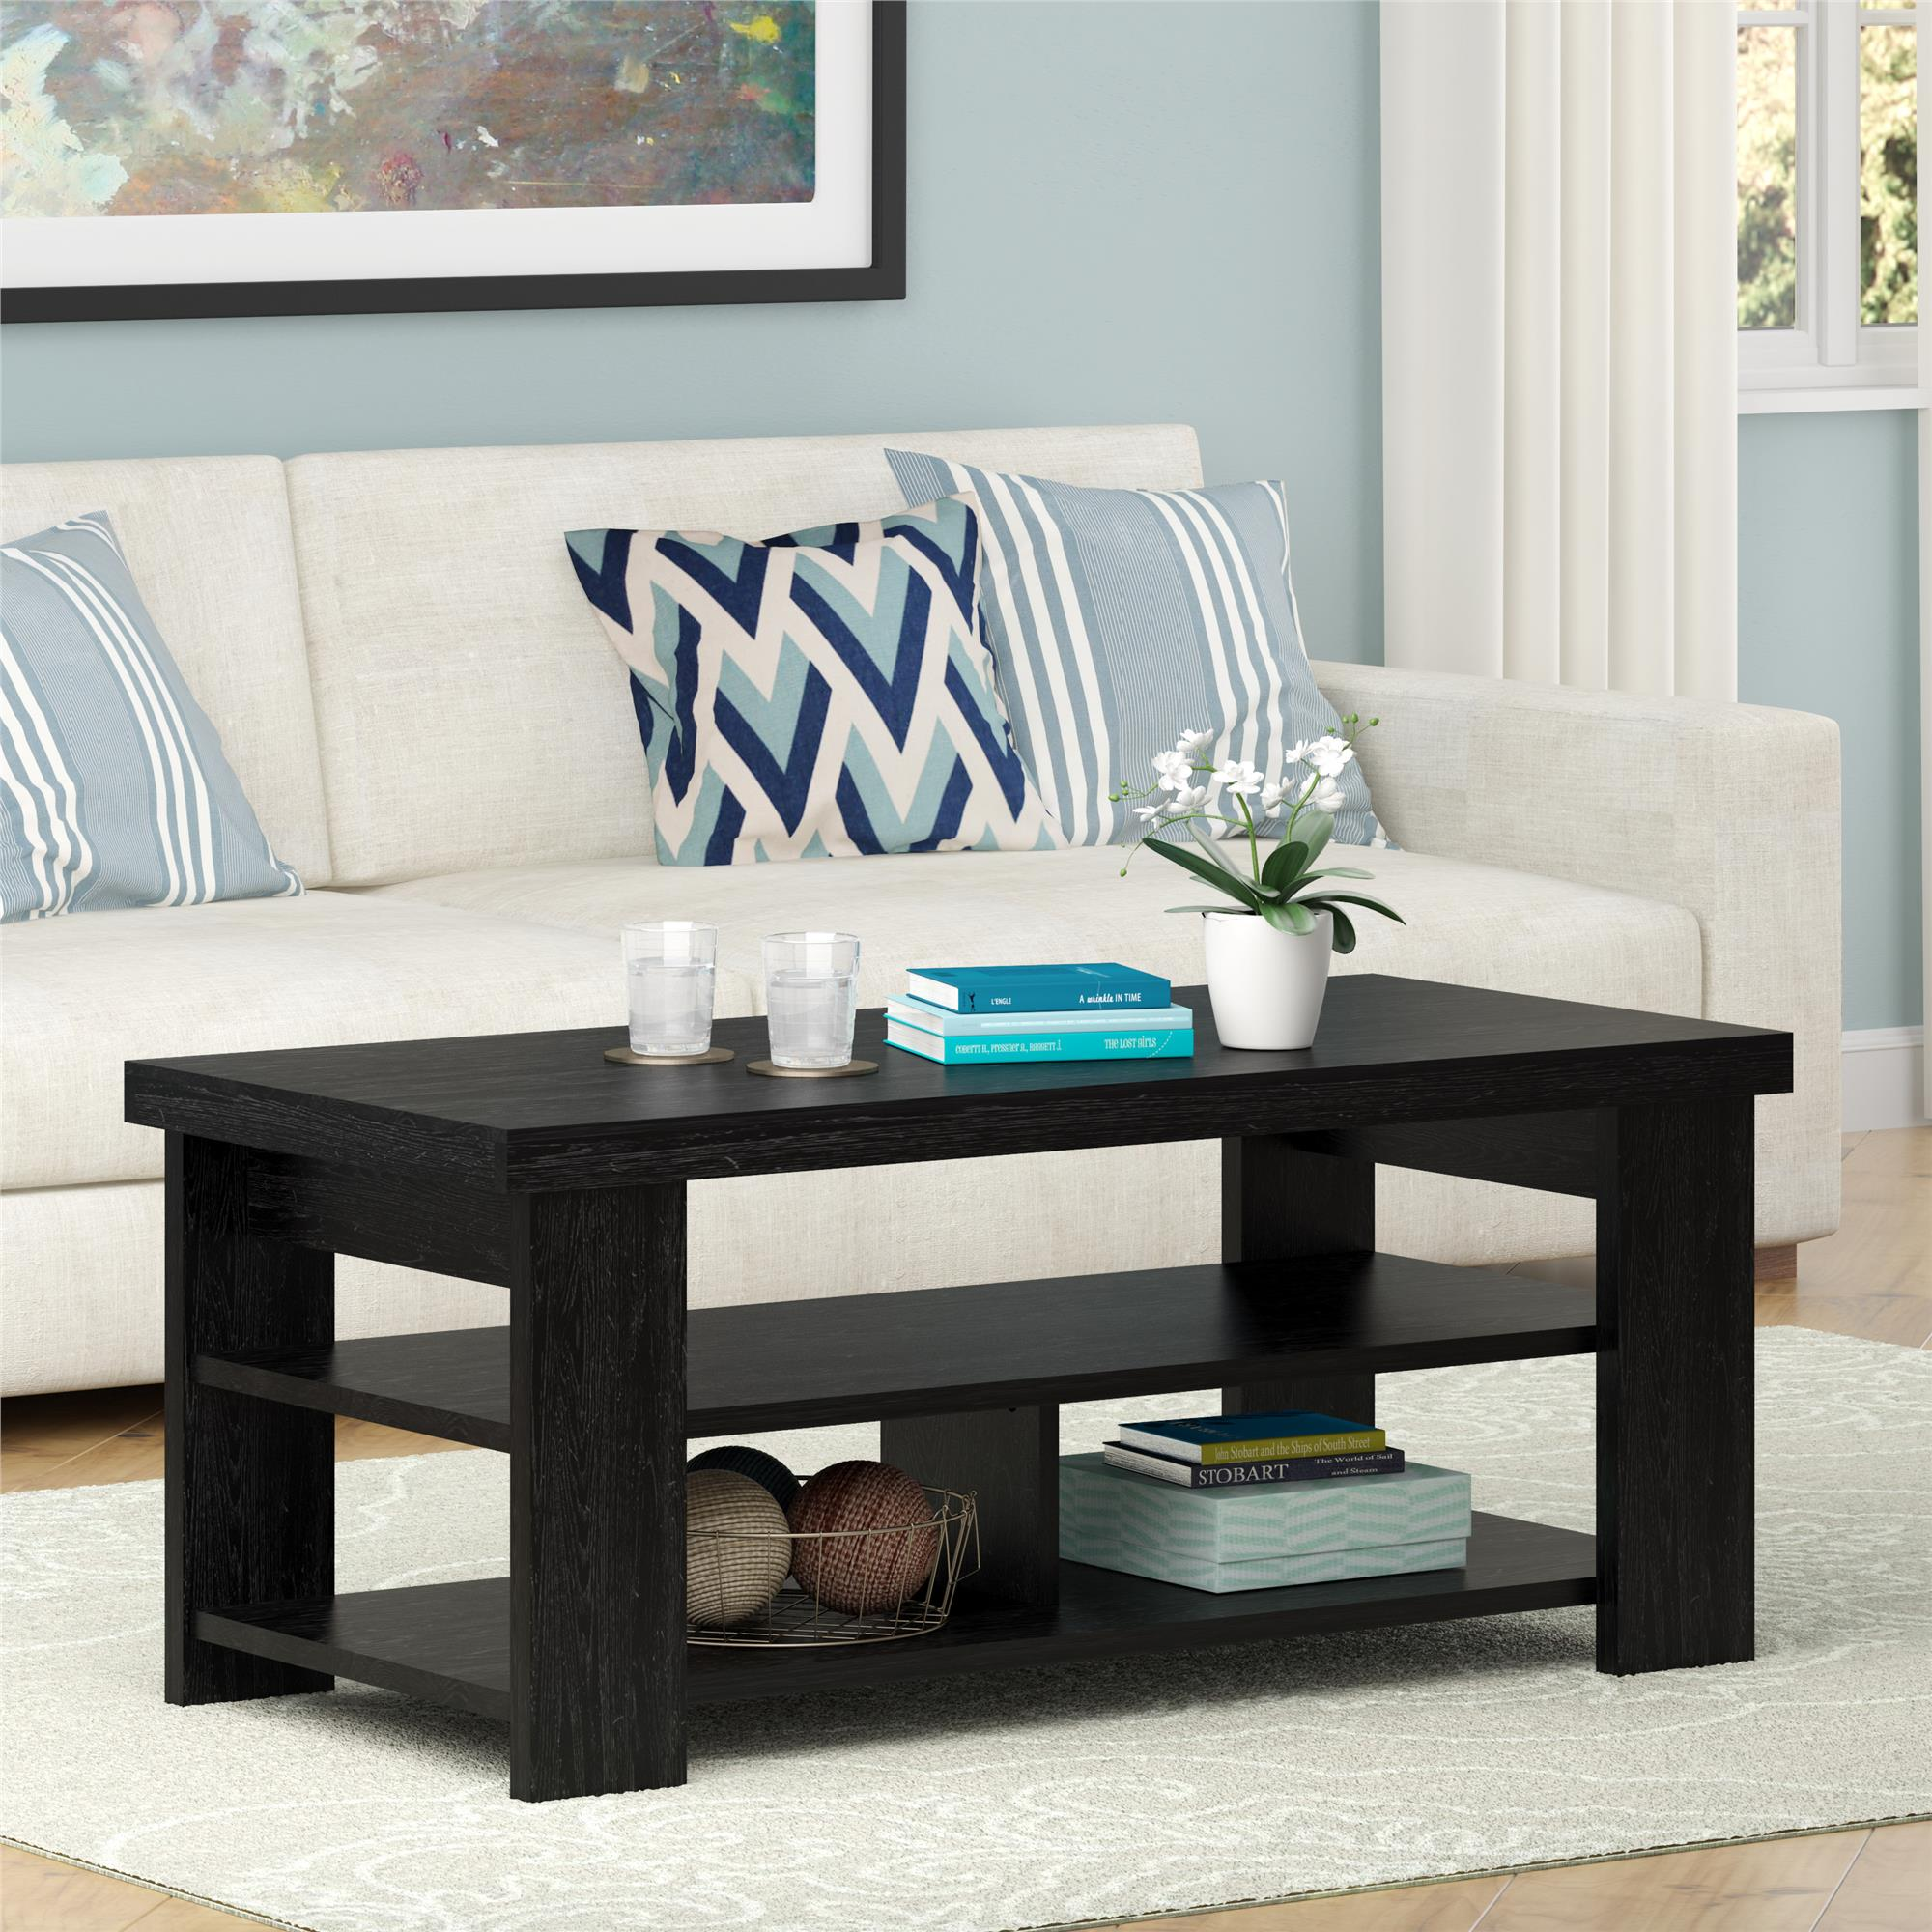 Ameriwood Home Jensen Coffee Table  Multiple Colors. Coffee Tables   Walmart com